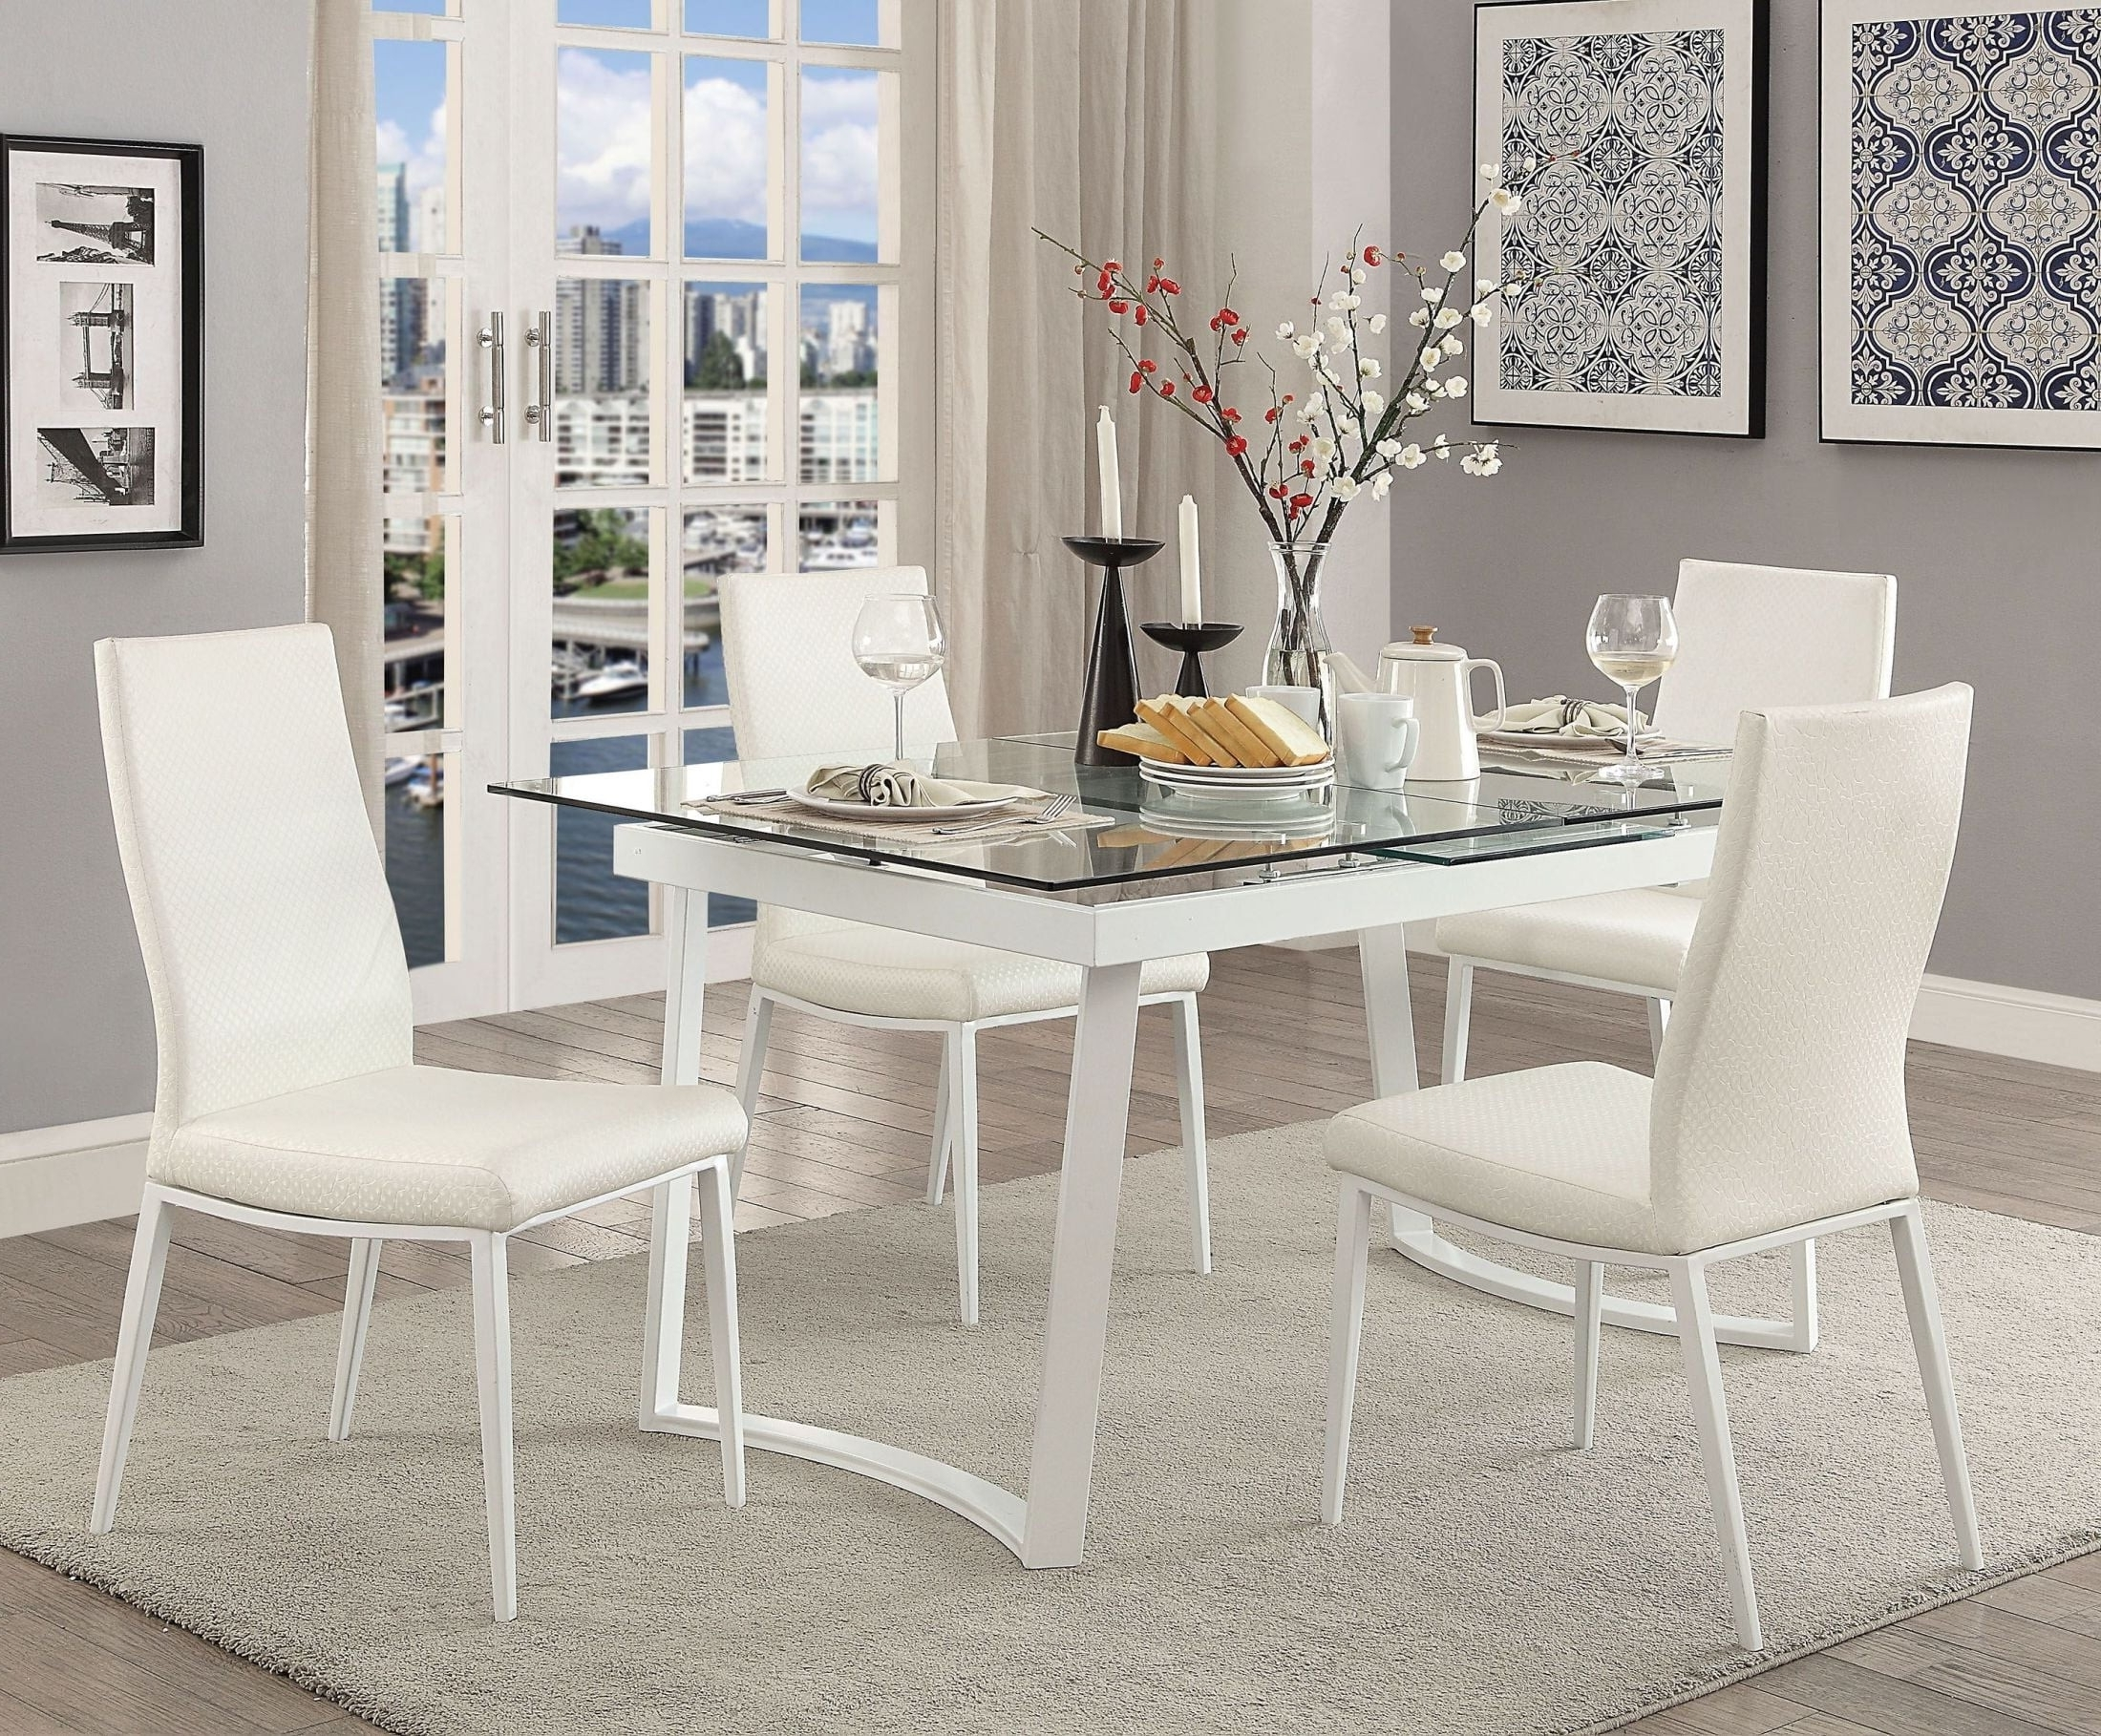 White Extendable Dining Tables And Chairs Inside 2017 Furniture Of America Miriam White Extendable Dining Table – Miriam (View 20 of 25)